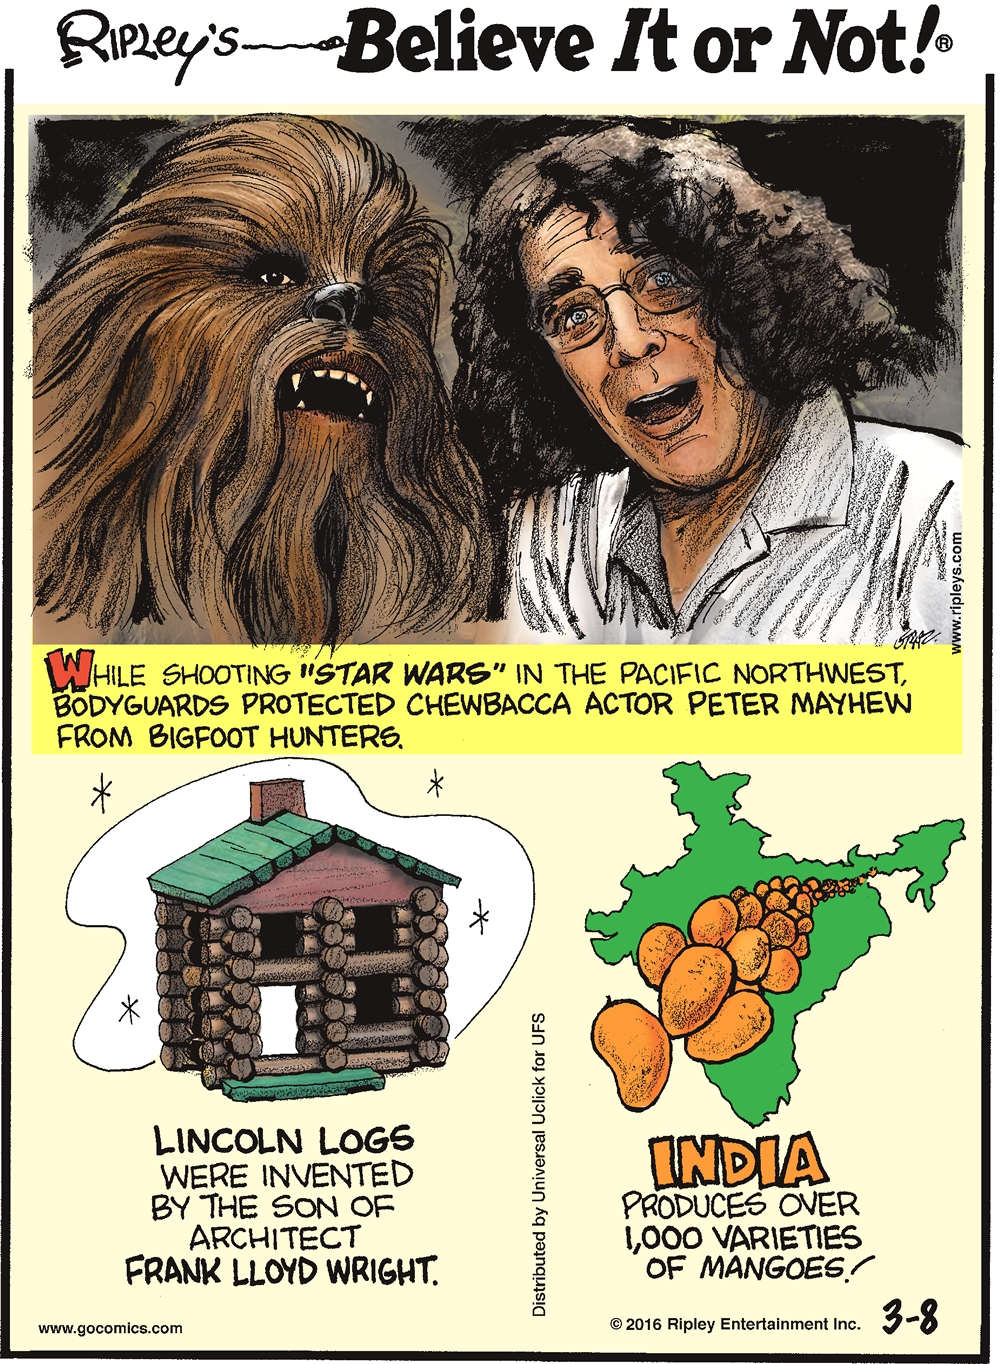 "While shooting ""Star Wars"" in the Pacific Northwest, bodyguards protected Chewbacca actor Peter Mayhew from bigfoot hunters. --------------------- Lincoln Logs were invented by the son of Architect Frank Lloyd Wright. --------------------- India produces over 1,000 varieties of mangoes!"